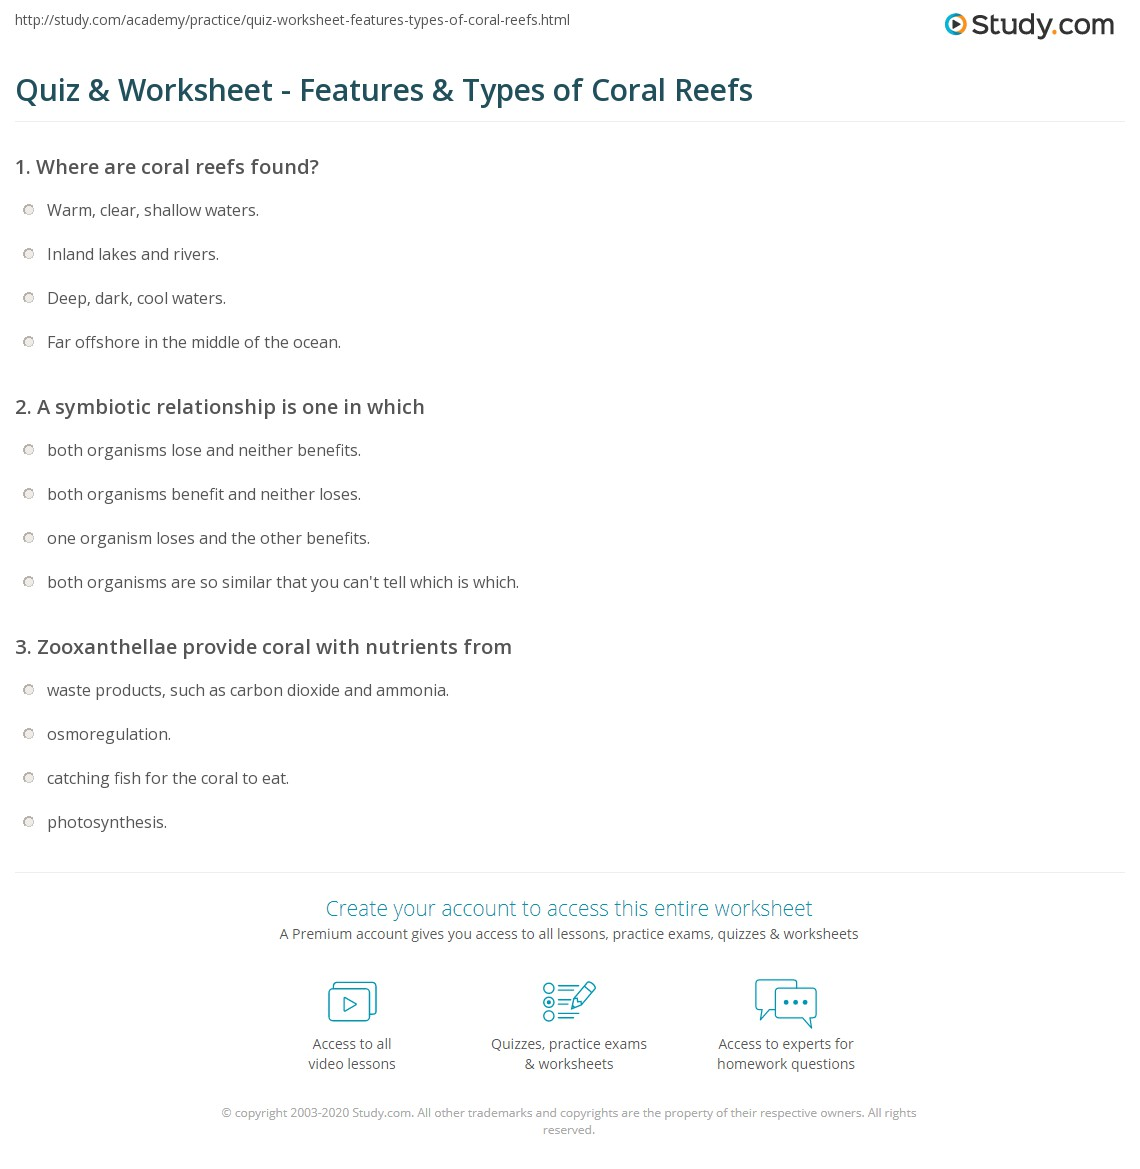 Quiz & Worksheet - Features & Types of Coral Reefs   Study.com